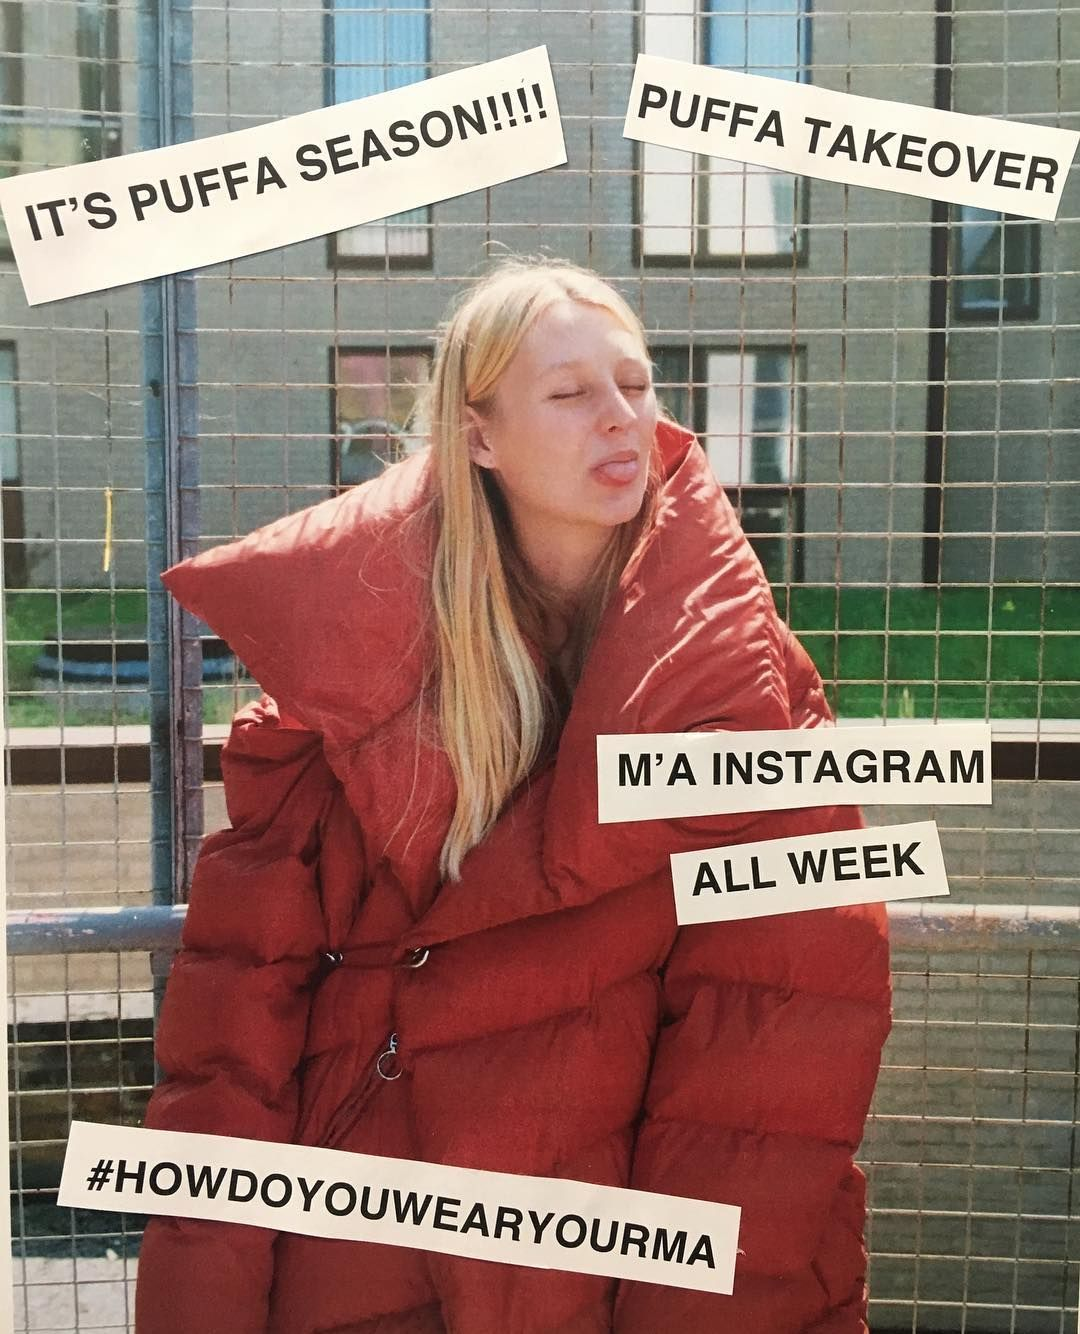 This week it's puffa week at M'A!!! Look out for us celebrating our favourite snuggly winter coat all week long!  We'd really love to see you in your #marquesalmeida puffas too, we'll be sharing our favourites all through the week so please hashtag with #howdoyouwearyourma so we can see you :) #winter2017